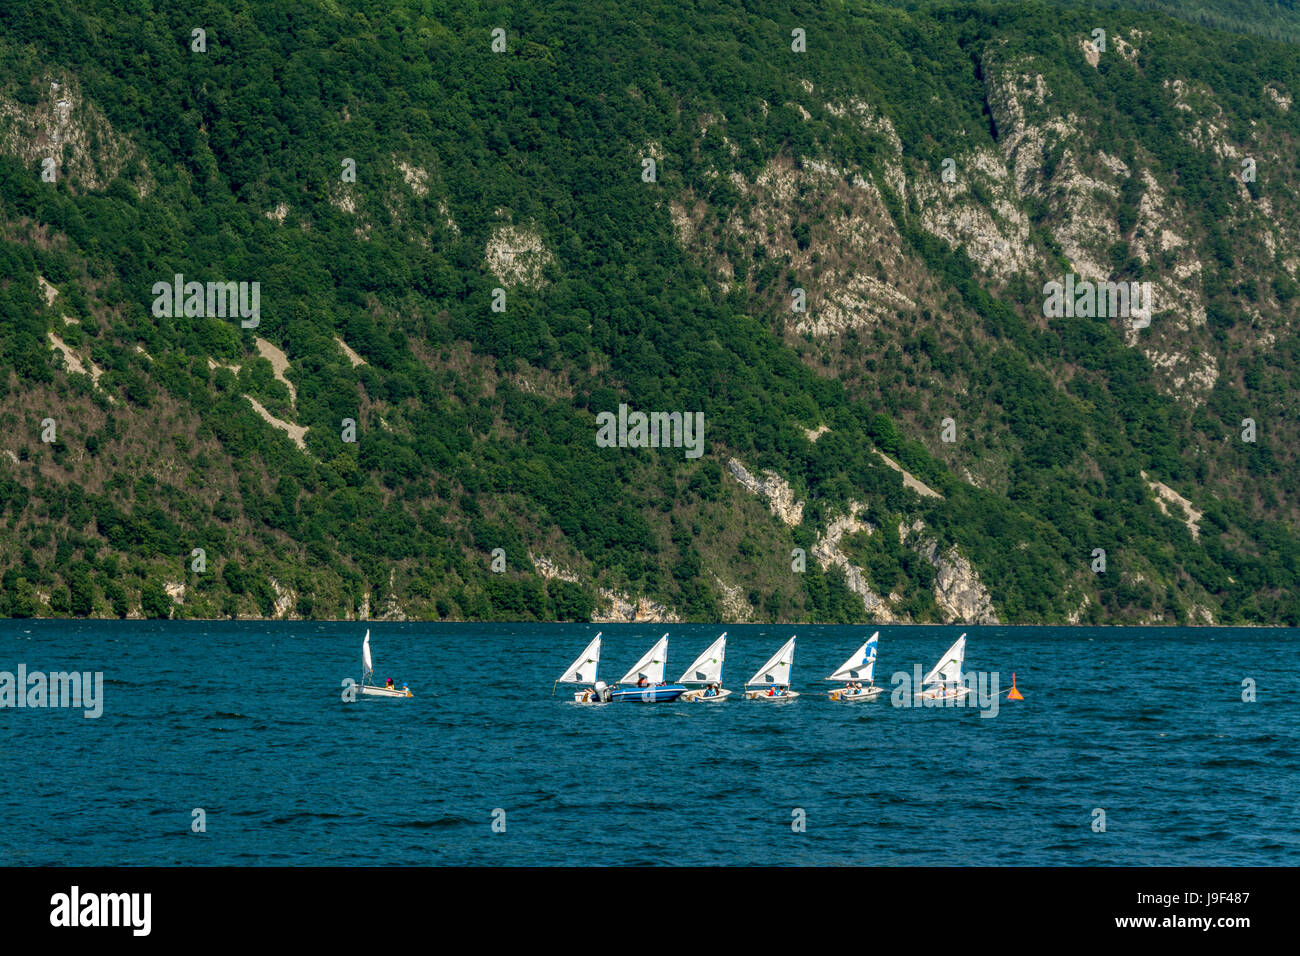 School sail boats on the lake du Bourget. Savoie. France - Stock Image